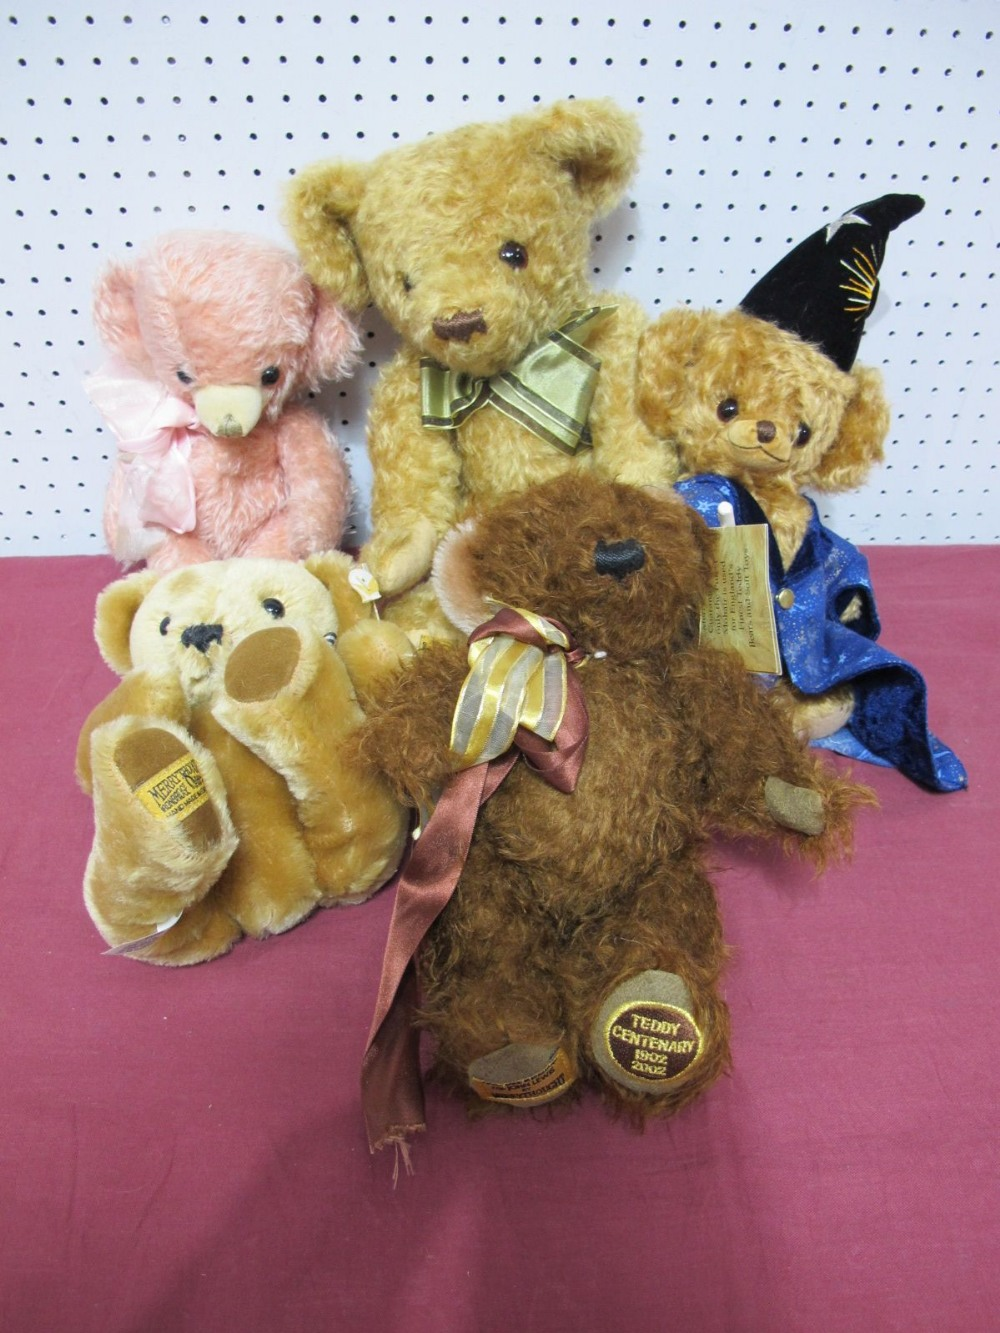 Lot 5 - Five Modern Merrythought Teddy Bears, including Cheeky Hocus Pocus, No. 264 of 500.